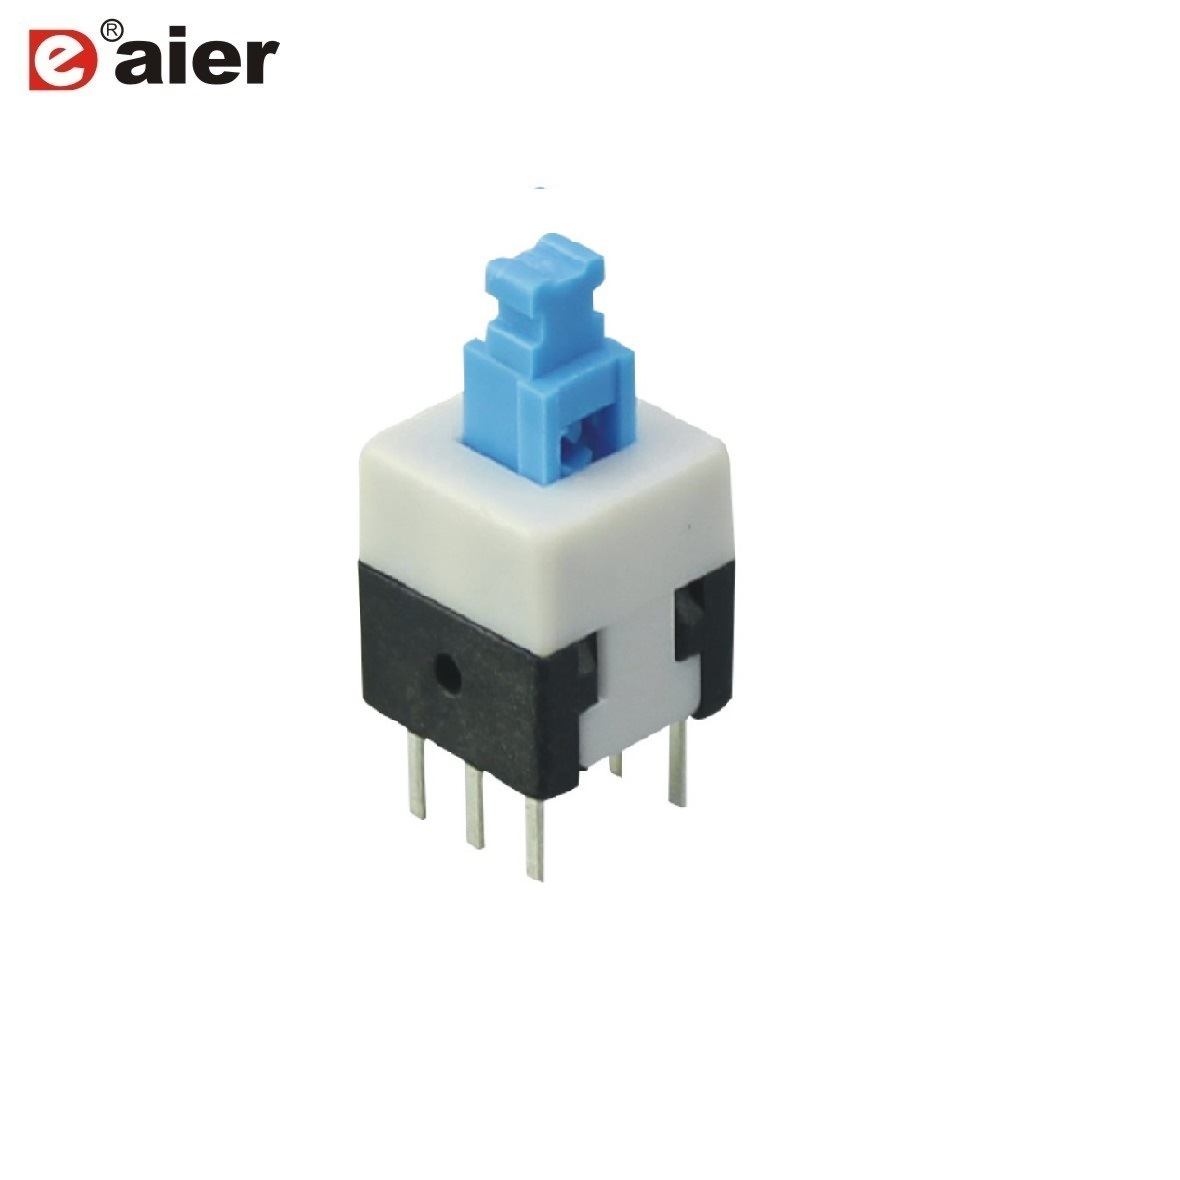 China On Latching Pcb Plastic 6 Pin Push Button Switch Pushbuttons Momentary And Off In Blue White